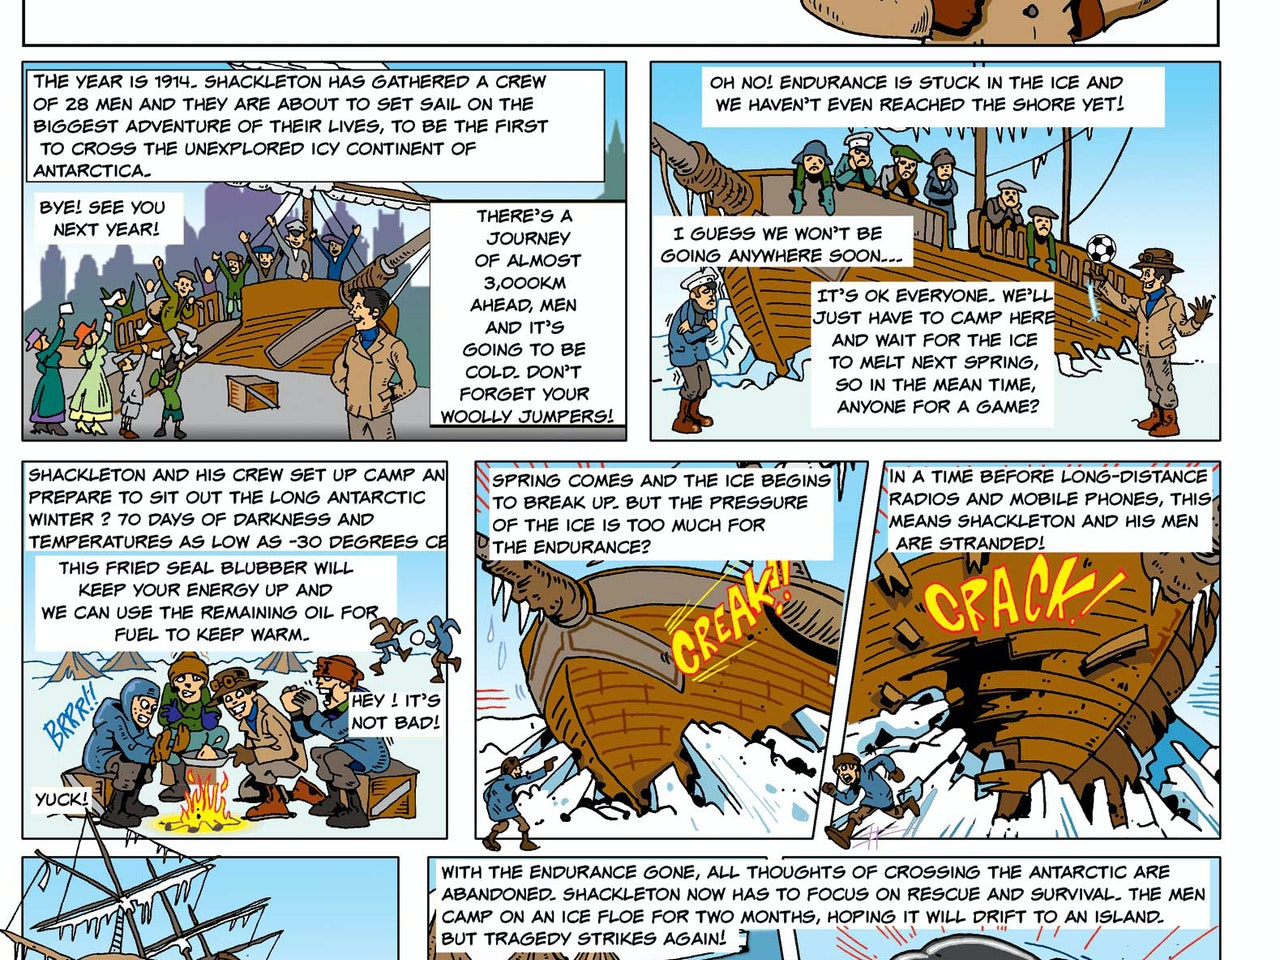 steampunk victorian historical history education hero illustration animation  funny humorous comical colourful graphic cartoon manga anime publishing explorer adventurer snow ice trapped ship north pole comic strip stotyboard